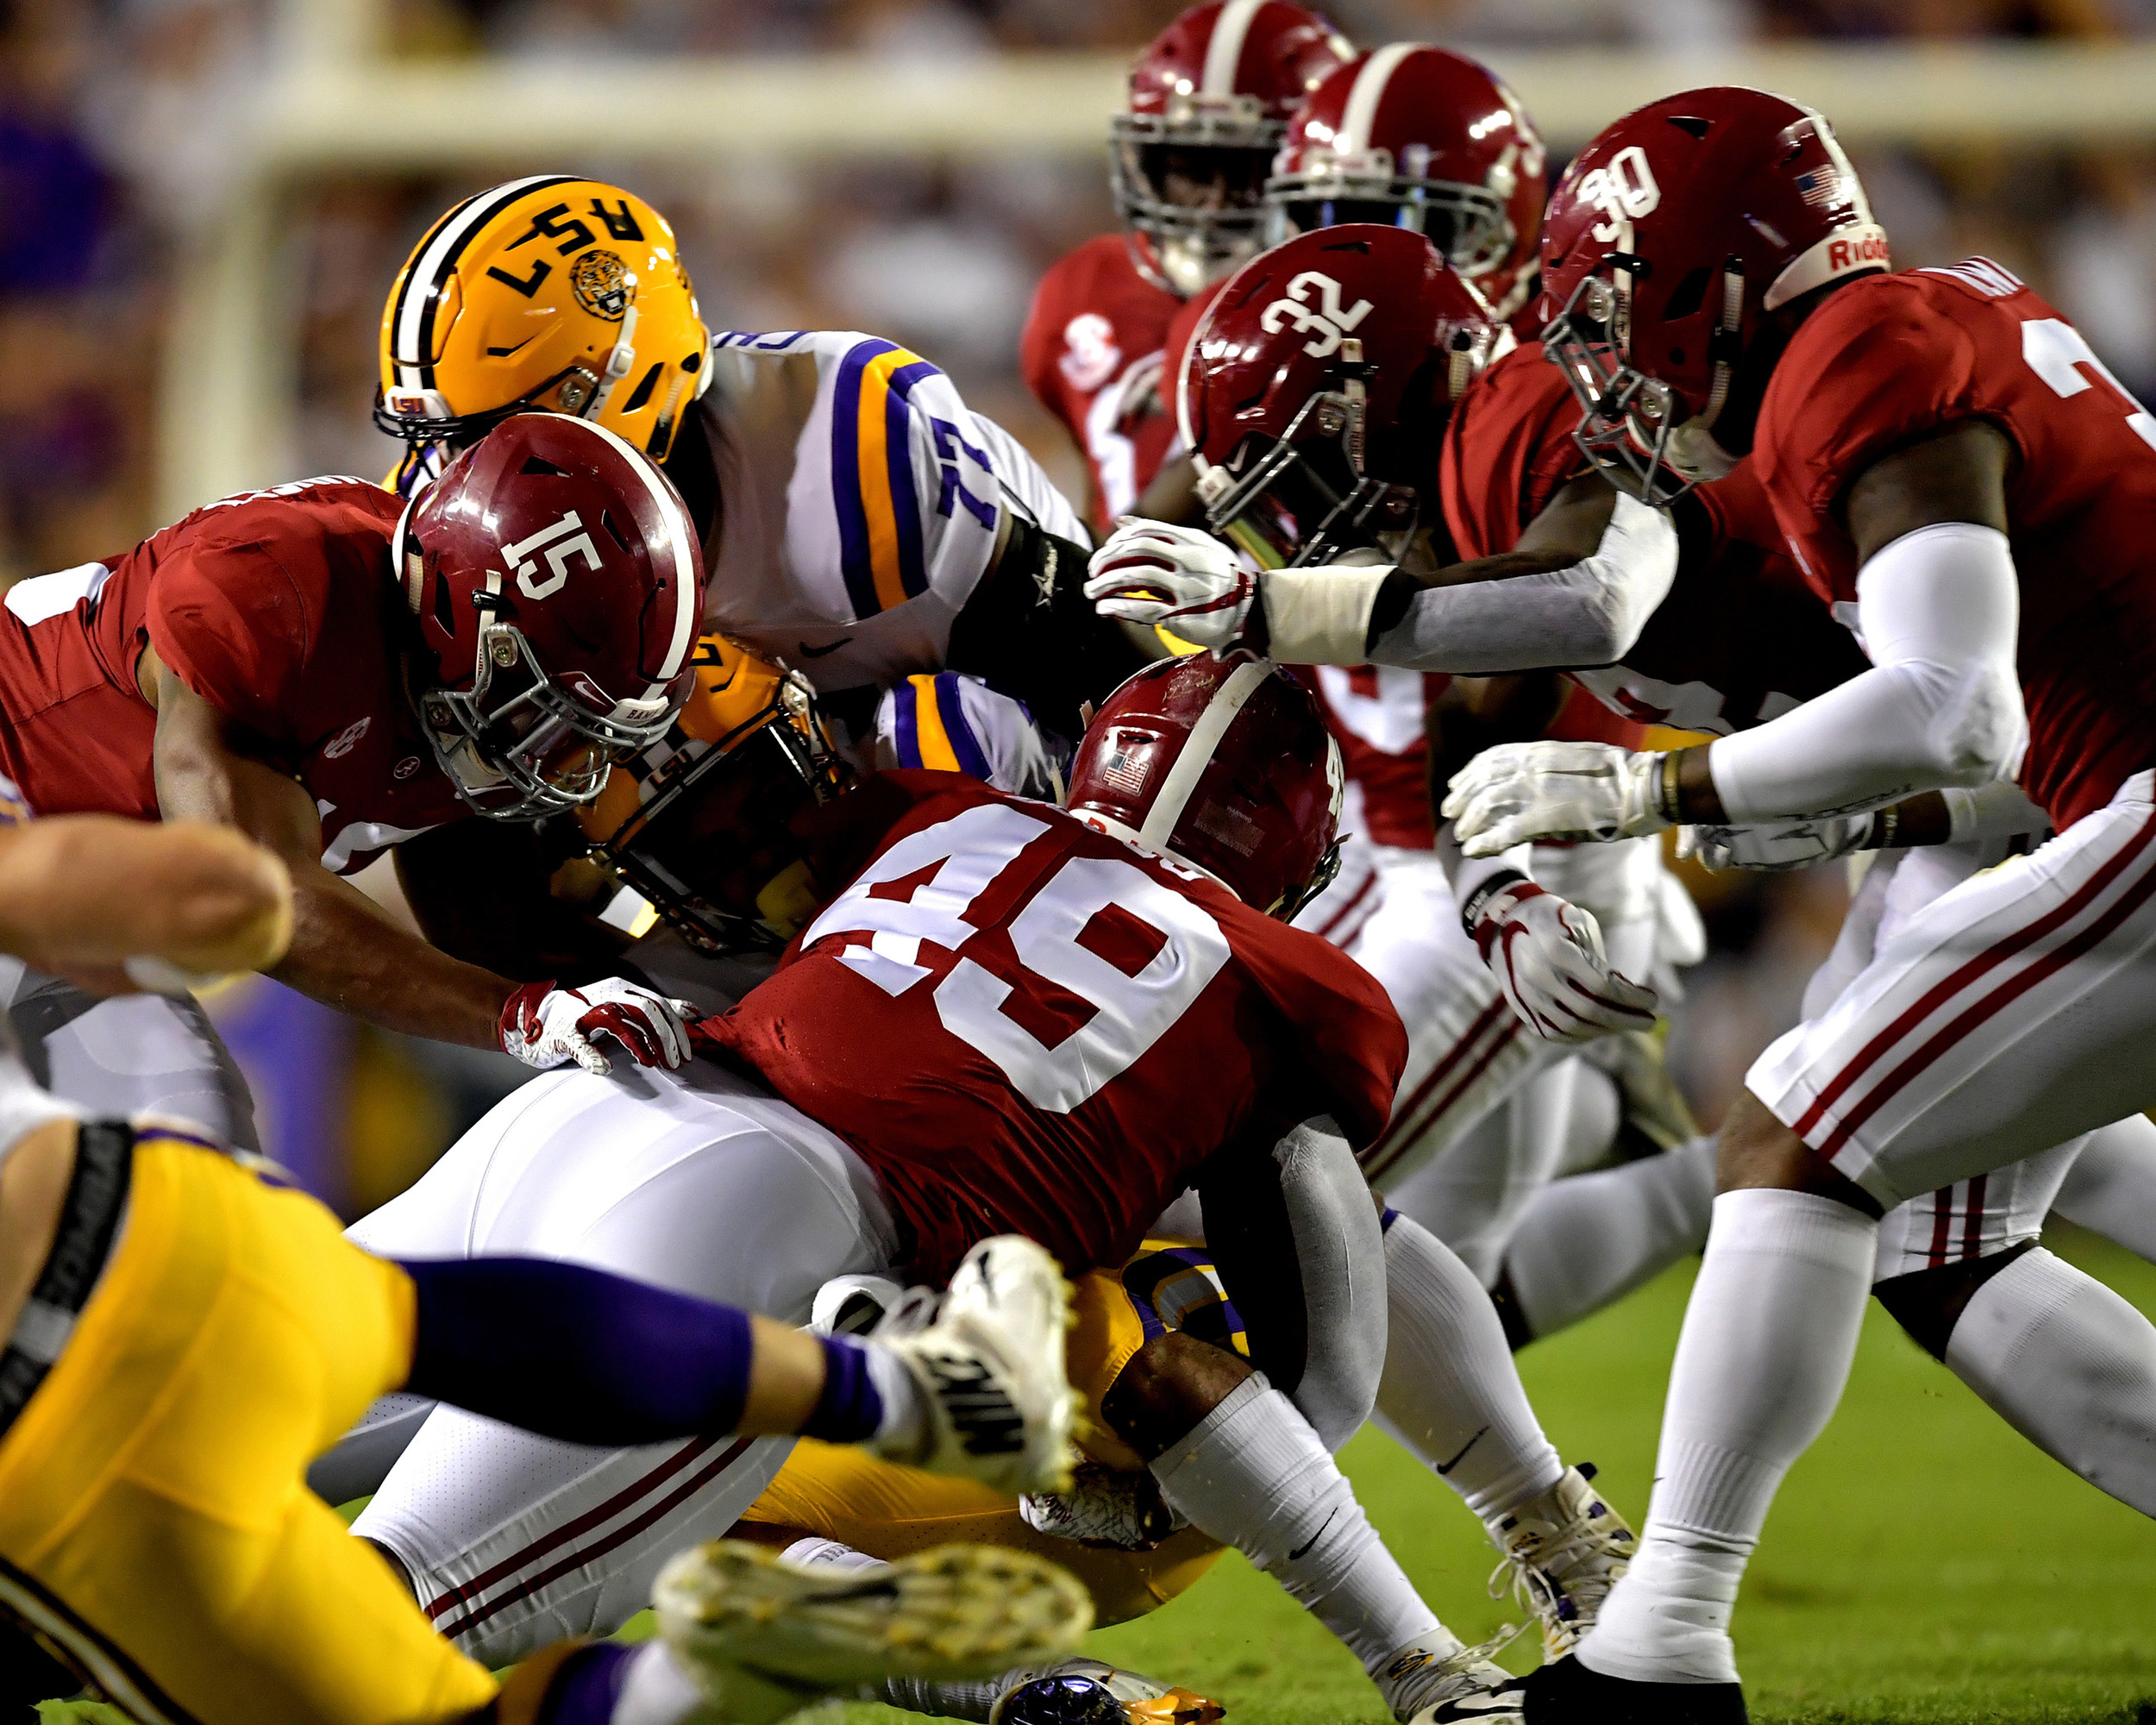 The Alabama Crimson Tide defense swarms an LSU player during the first half of an NCAA football game between Alabama and the LSU Tigers Saturday, November 3, 2018, at Tiger Stadium in Baton Rouge, La. Alabama wins 29-0. (Photo by Lee Walls)